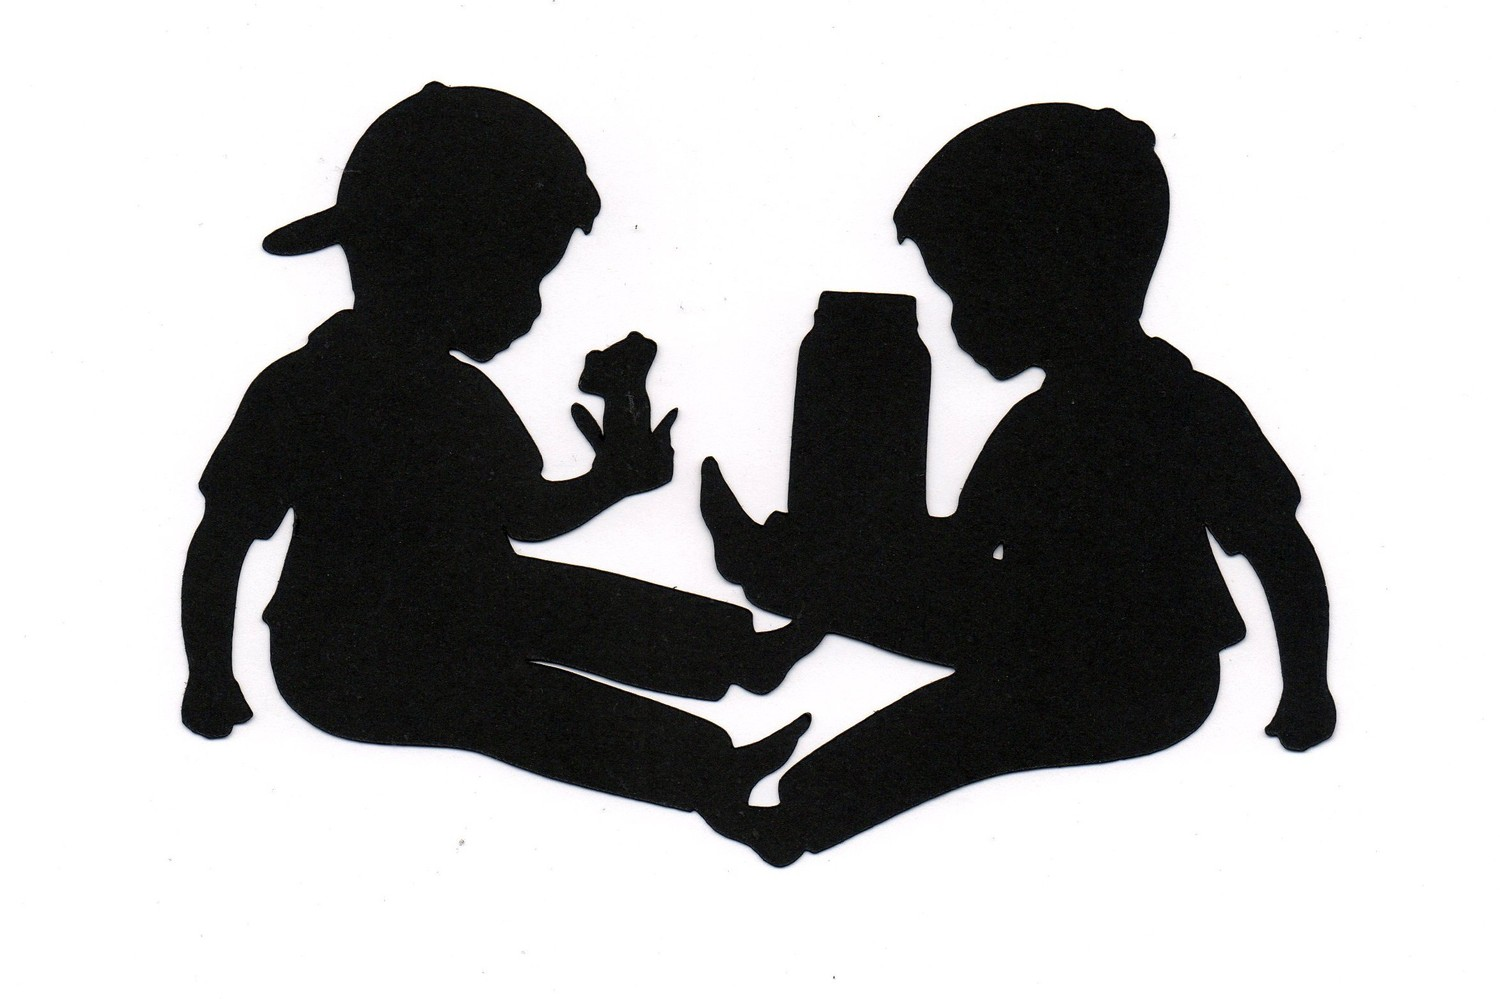 Child Playing Silhouette At Getdrawings Com Free For Personal Use